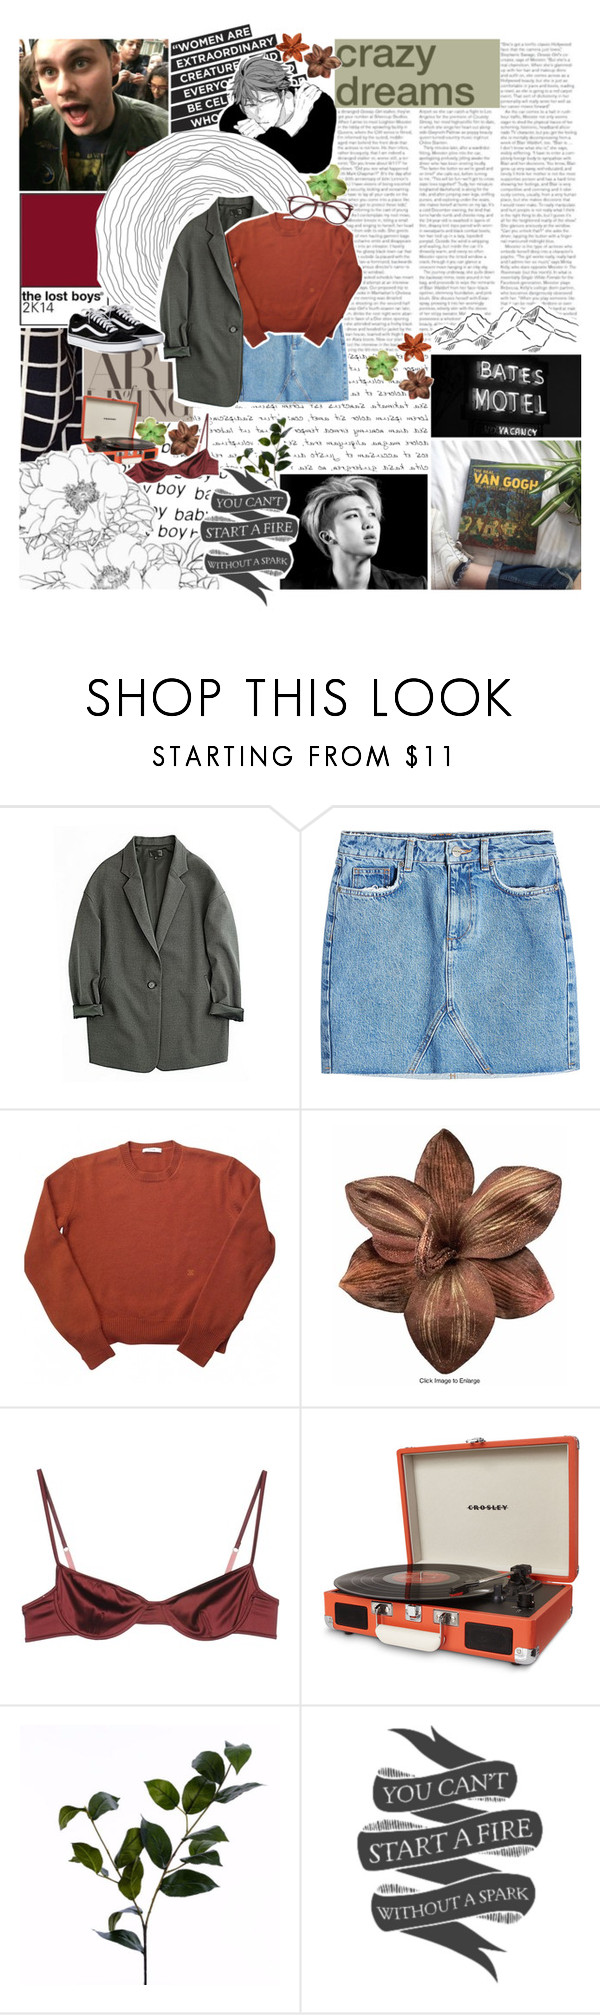 """when you treat me wrong it's so right // #247 ~ 300617"" by elliebonjelly ❤ liked on Polyvore featuring GET LOST, Anine Bing, Marni, Dot & Bo, Wyld Home, Native State and EyeBuyDirect.com"